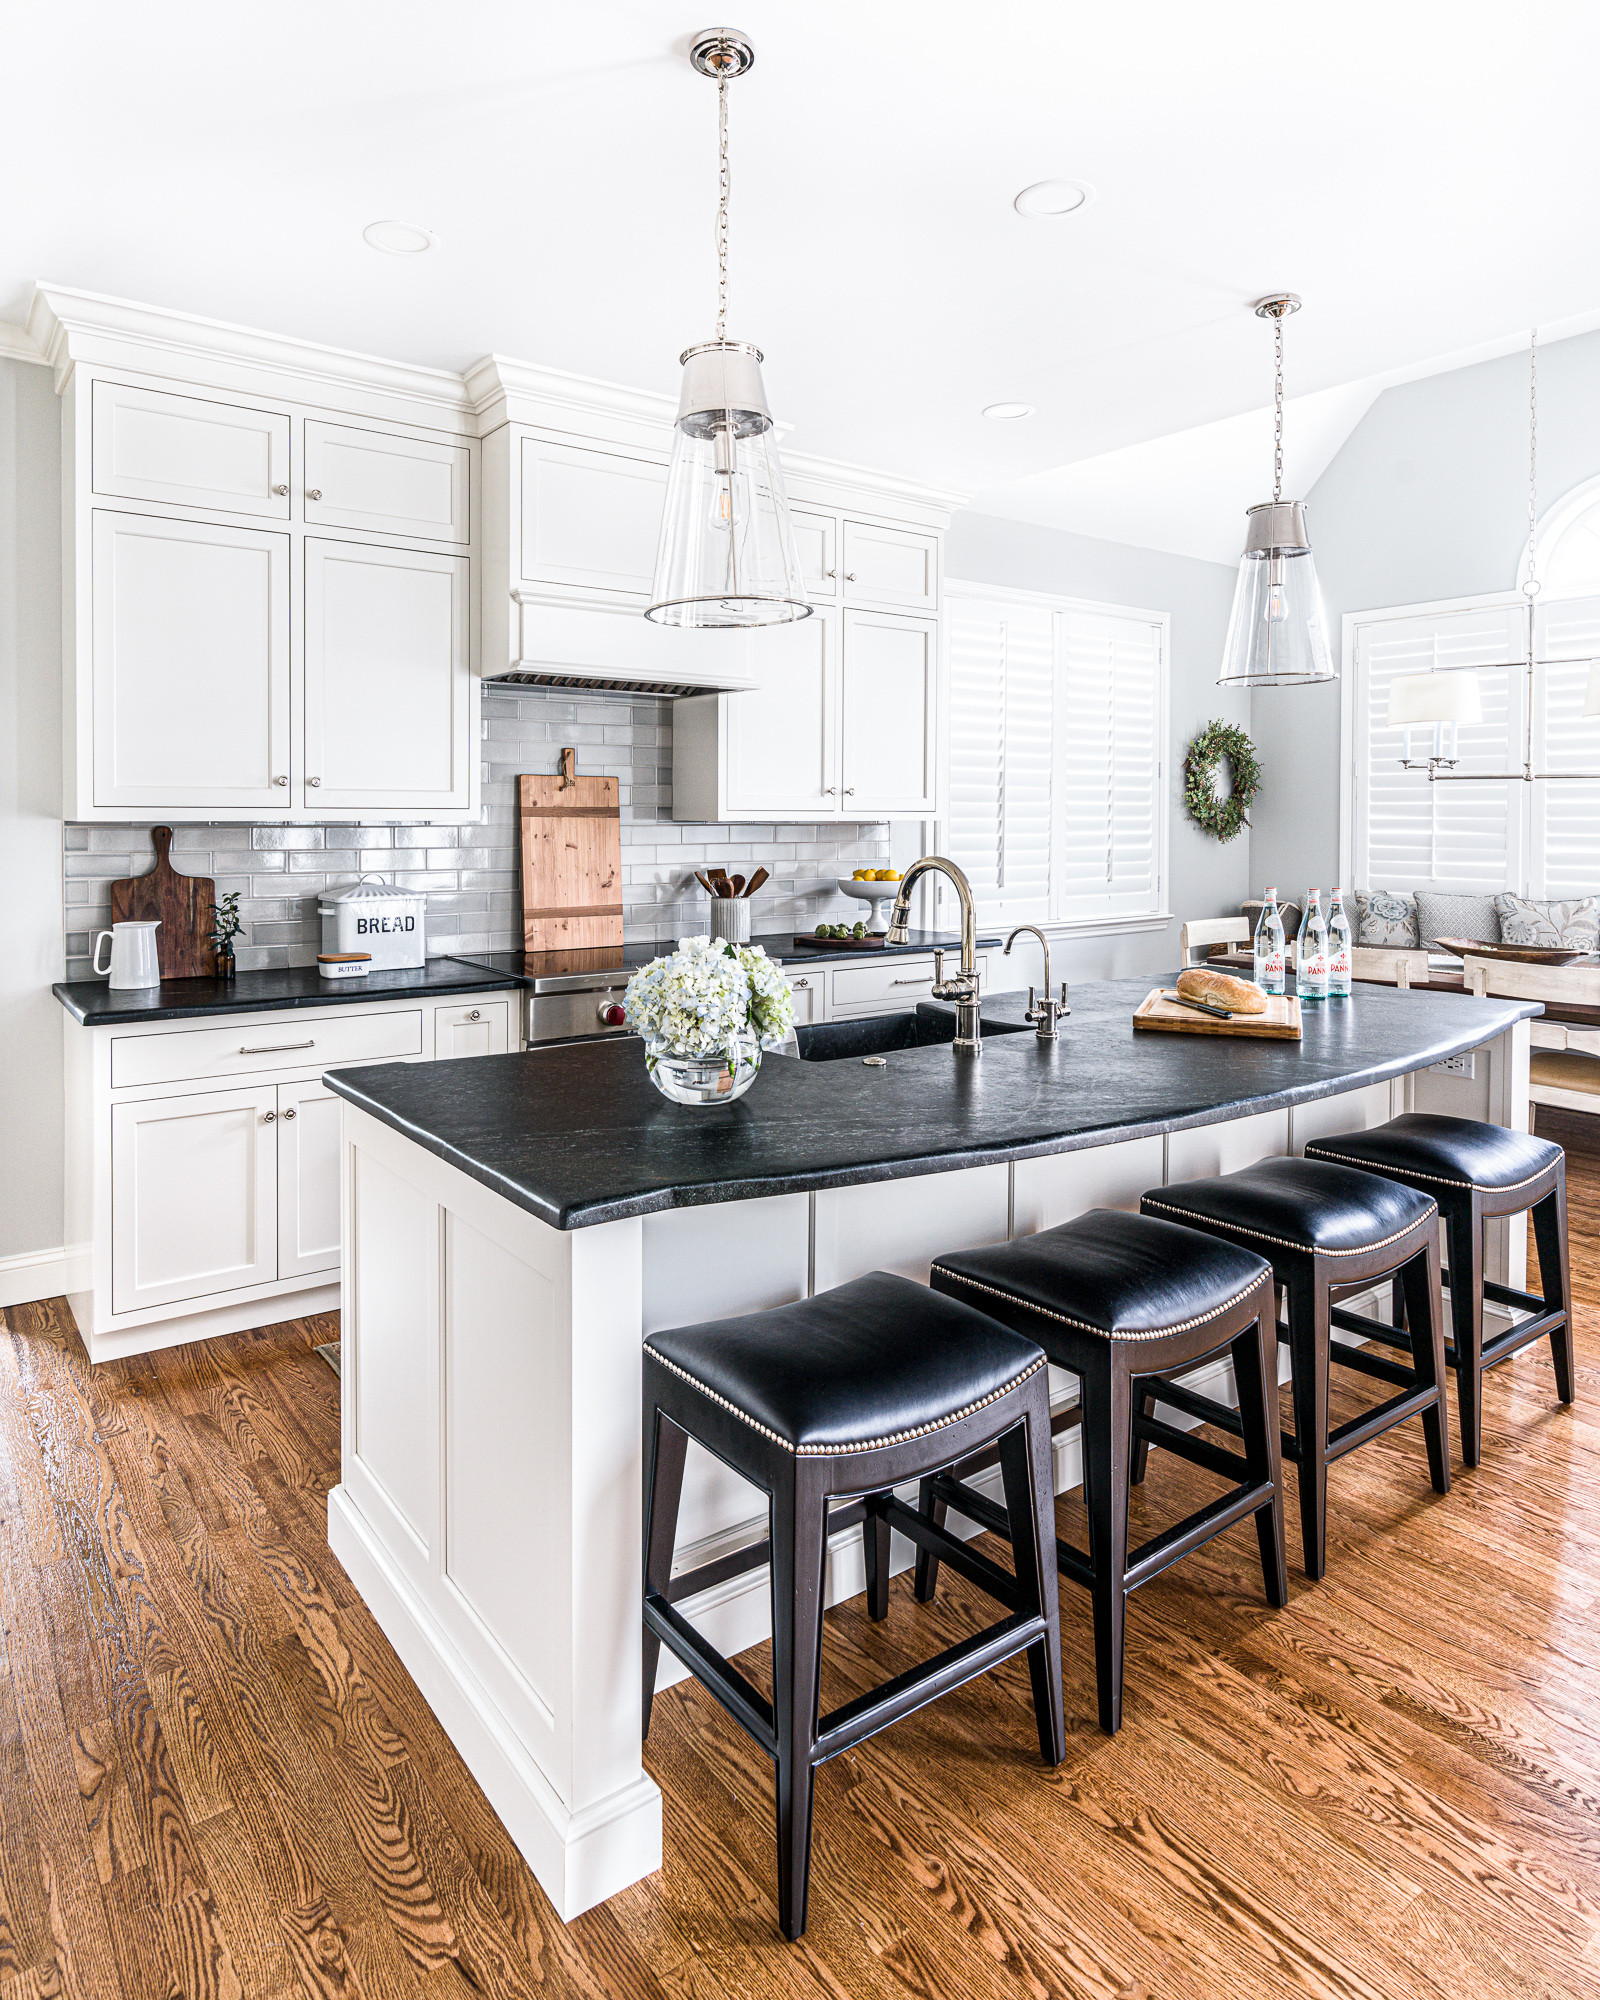 75 Beautiful Galley Kitchen With An Island Pictures Ideas November 2020 Houzz